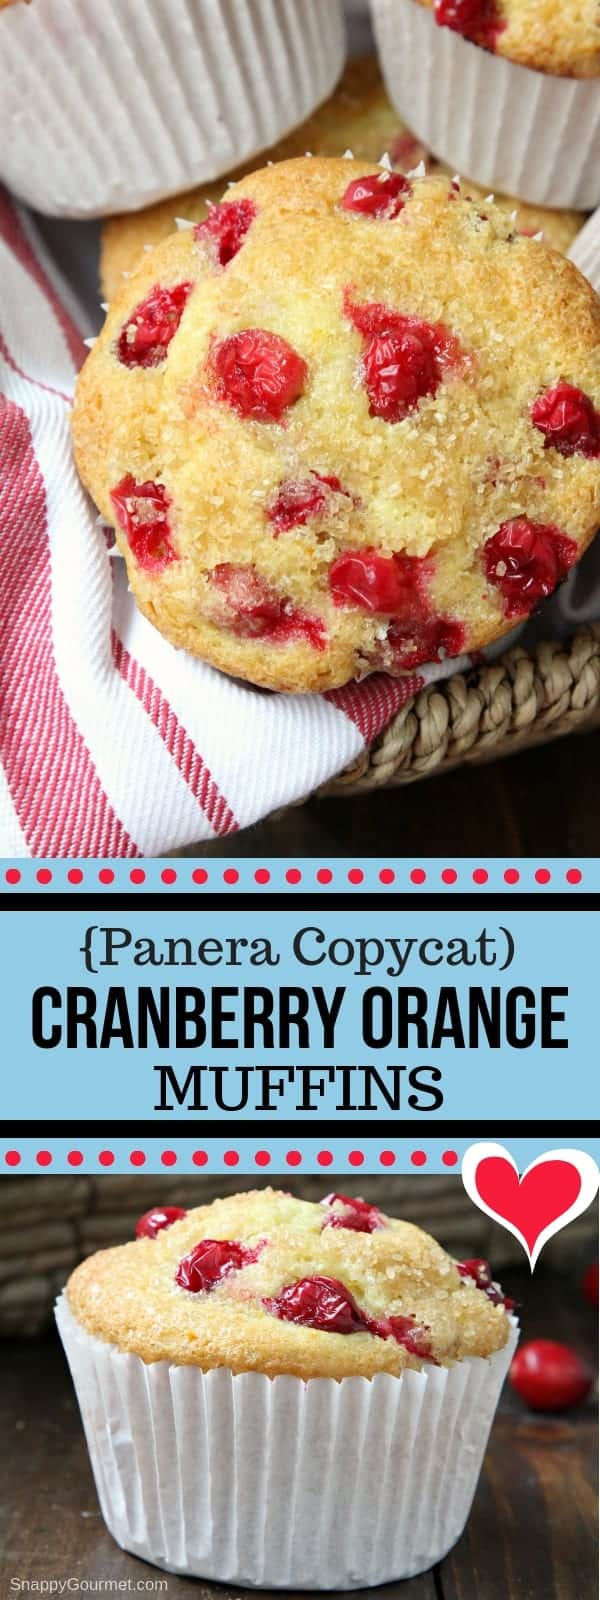 Orange Cranberry Muffins - Jumbo Copycat Panera Orange Cranberry Muffins recipe